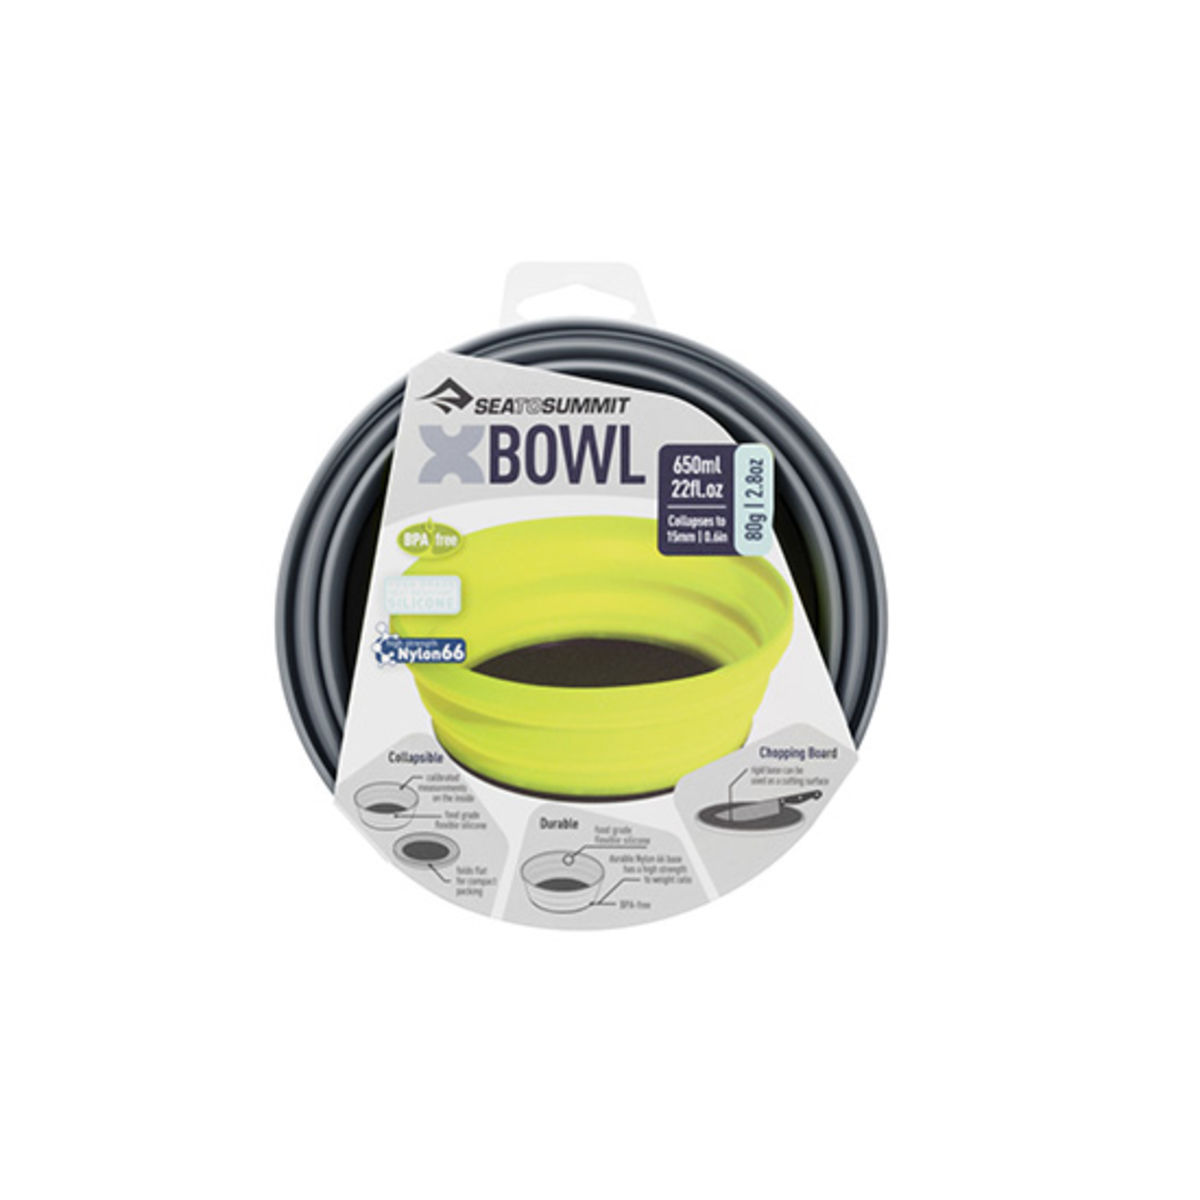 Bol pliable Sea to Summit X-Bowl - 0,65 L - Gris